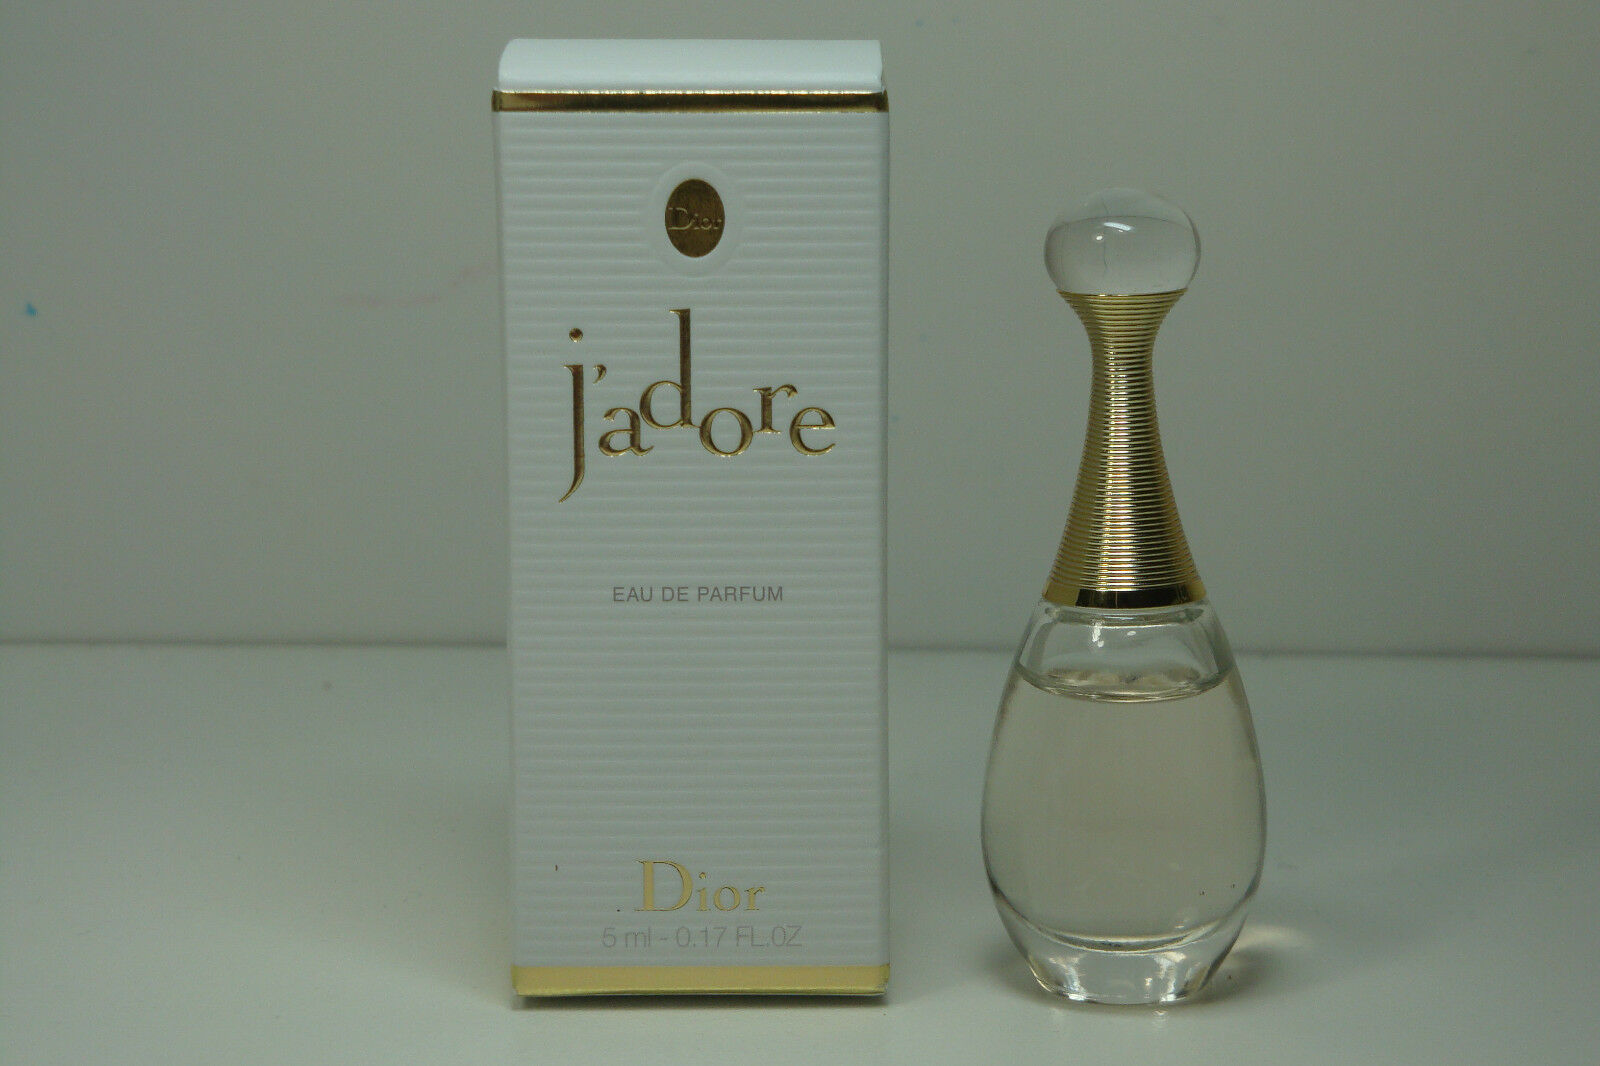 Jadore By Christian Dior For Women Edp Mini Perfume 017oz 5ml 100ml New 1 Of 1free Shipping